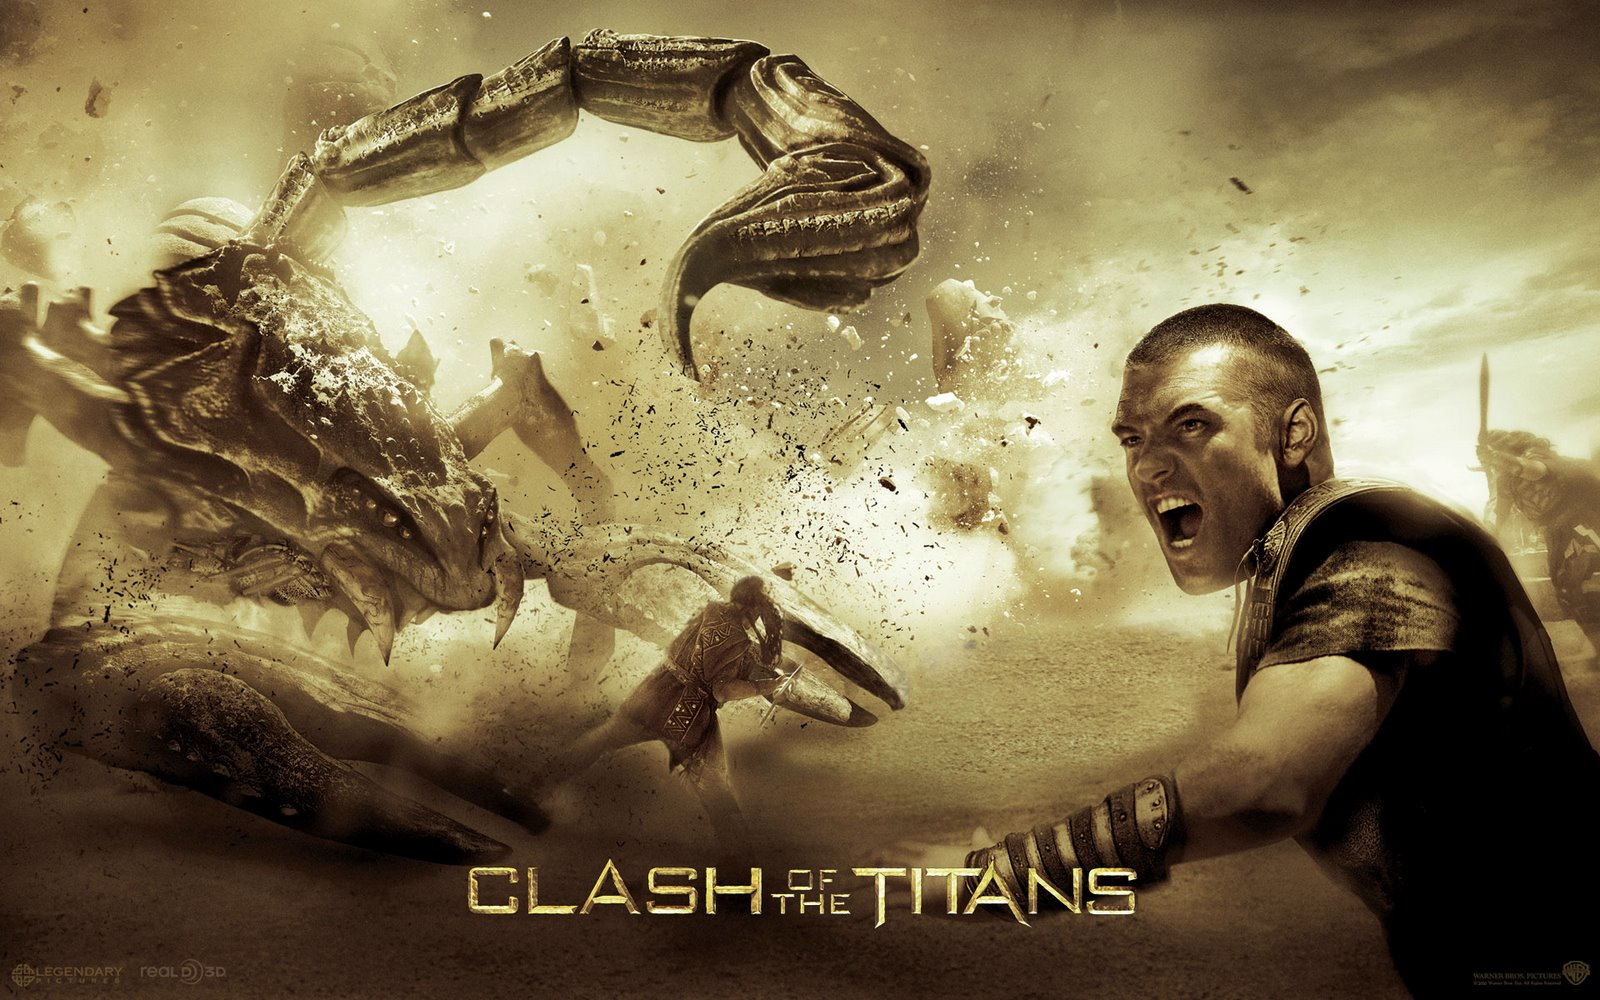 http://3.bp.blogspot.com/_rhrvnb_-SMk/S8YllmzEloI/AAAAAAAADac/ztgw92sBdrU/s1600/2010_clash_of_the_titans_wallpaper_007.jpg